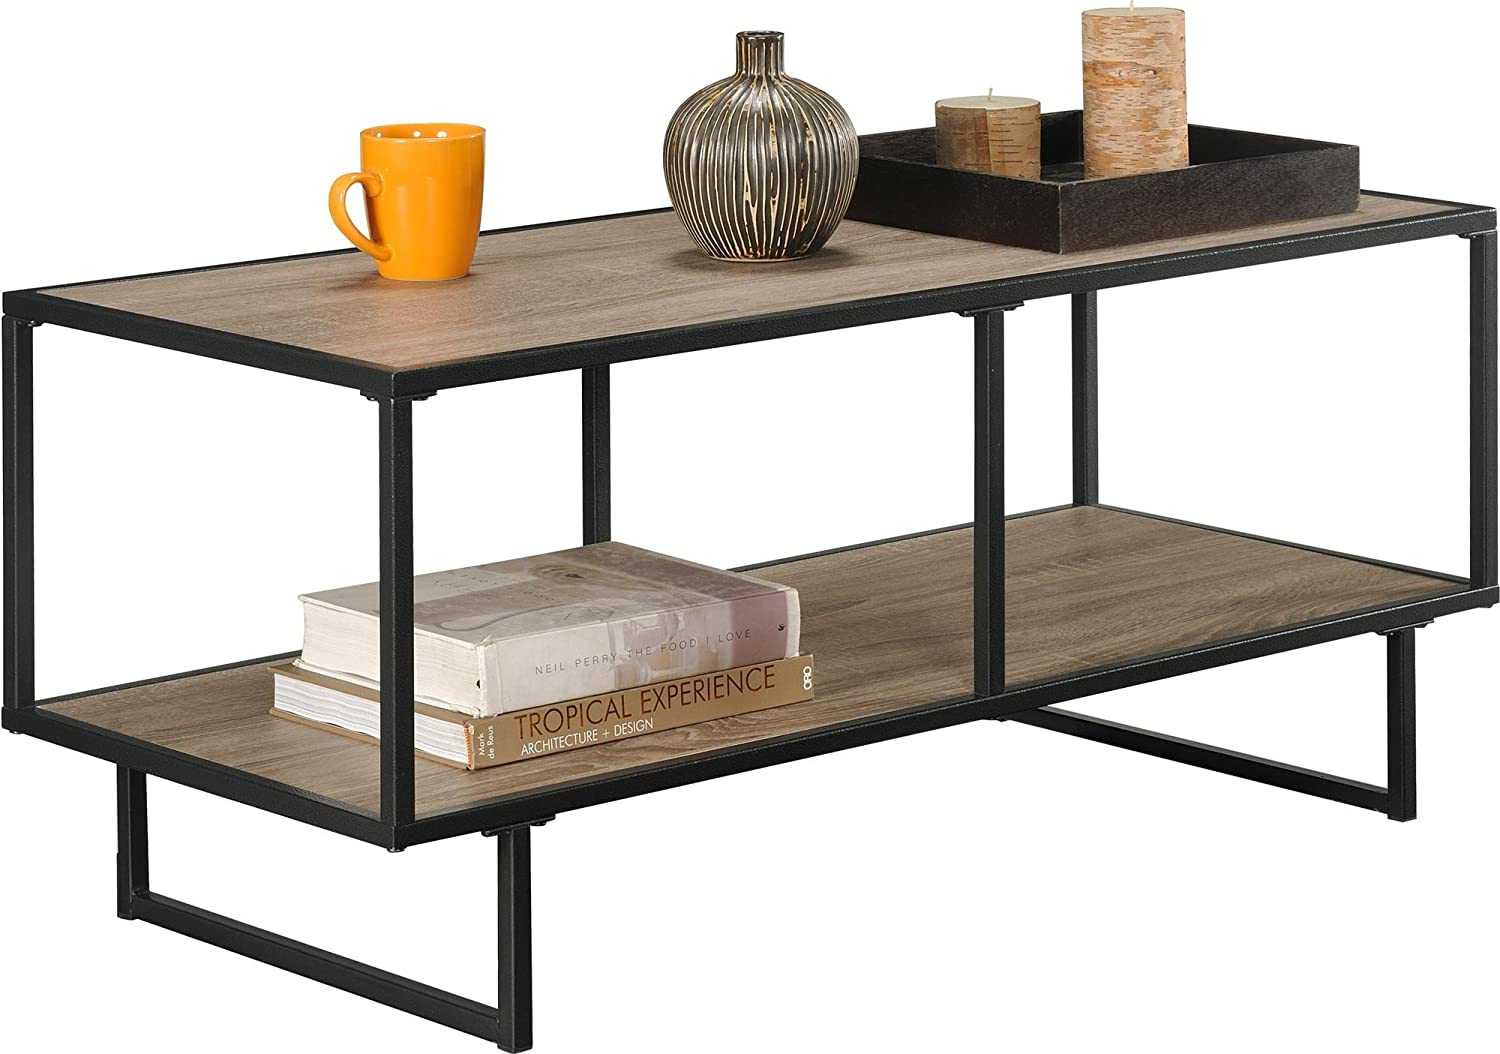 Amazon ameriwood home emmett tv standcoffee table for tvs up amazon ameriwood home emmett tv standcoffee table for tvs up to 42 wide weathered oak kitchen dining geotapseo Images